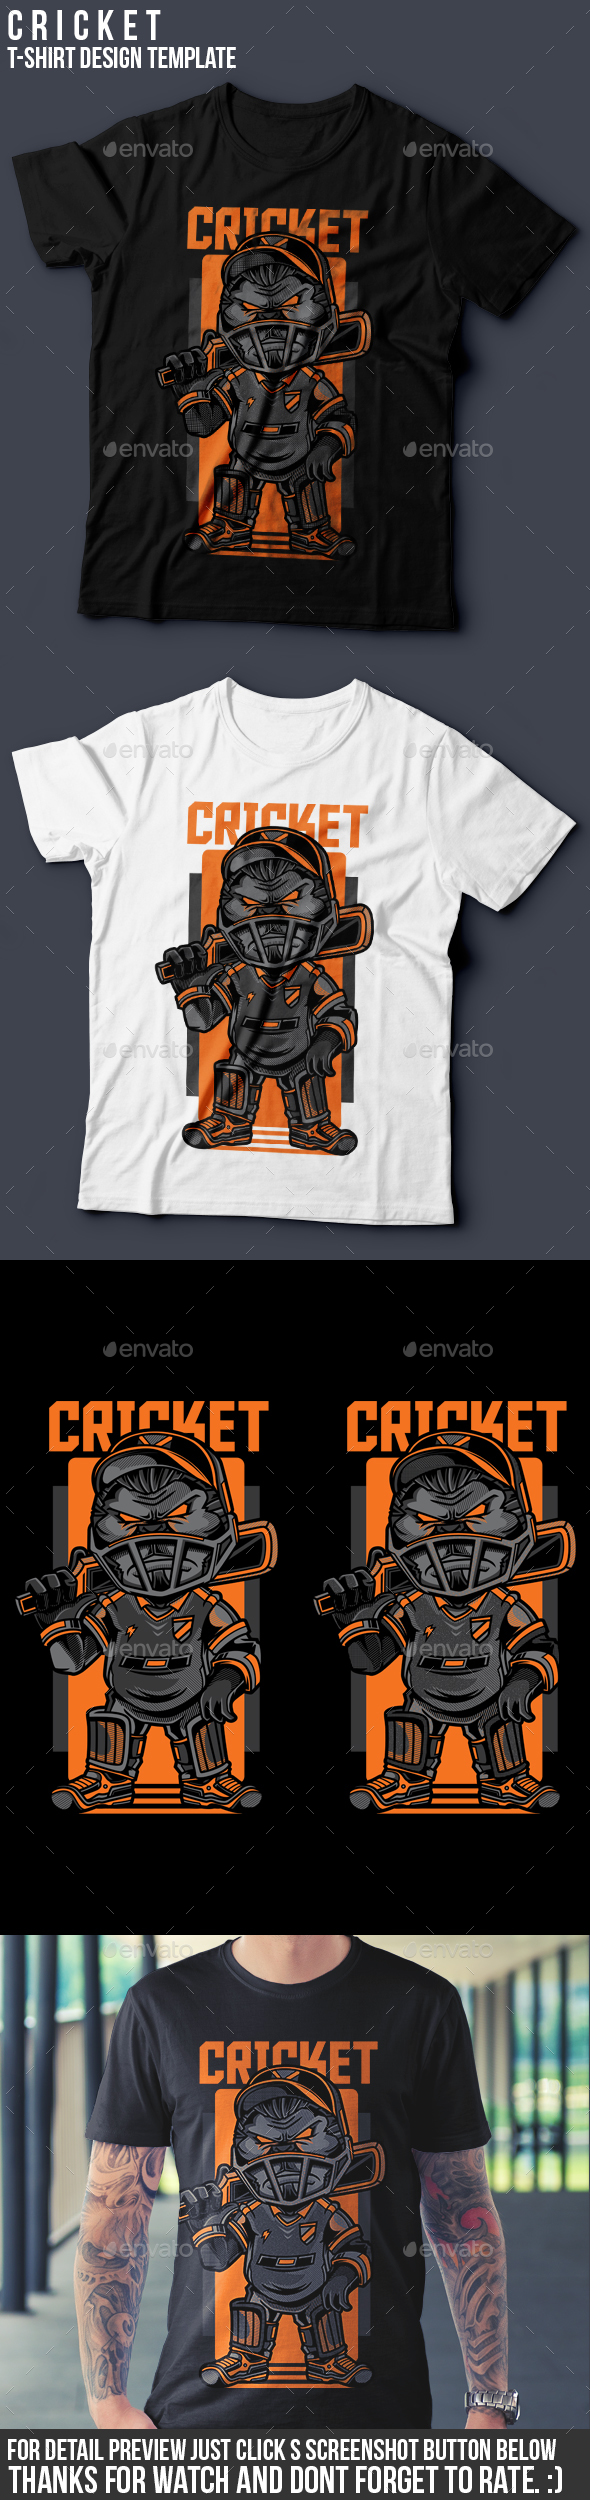 Cricket T-Shirt Design - Sports & Teams T-Shirts